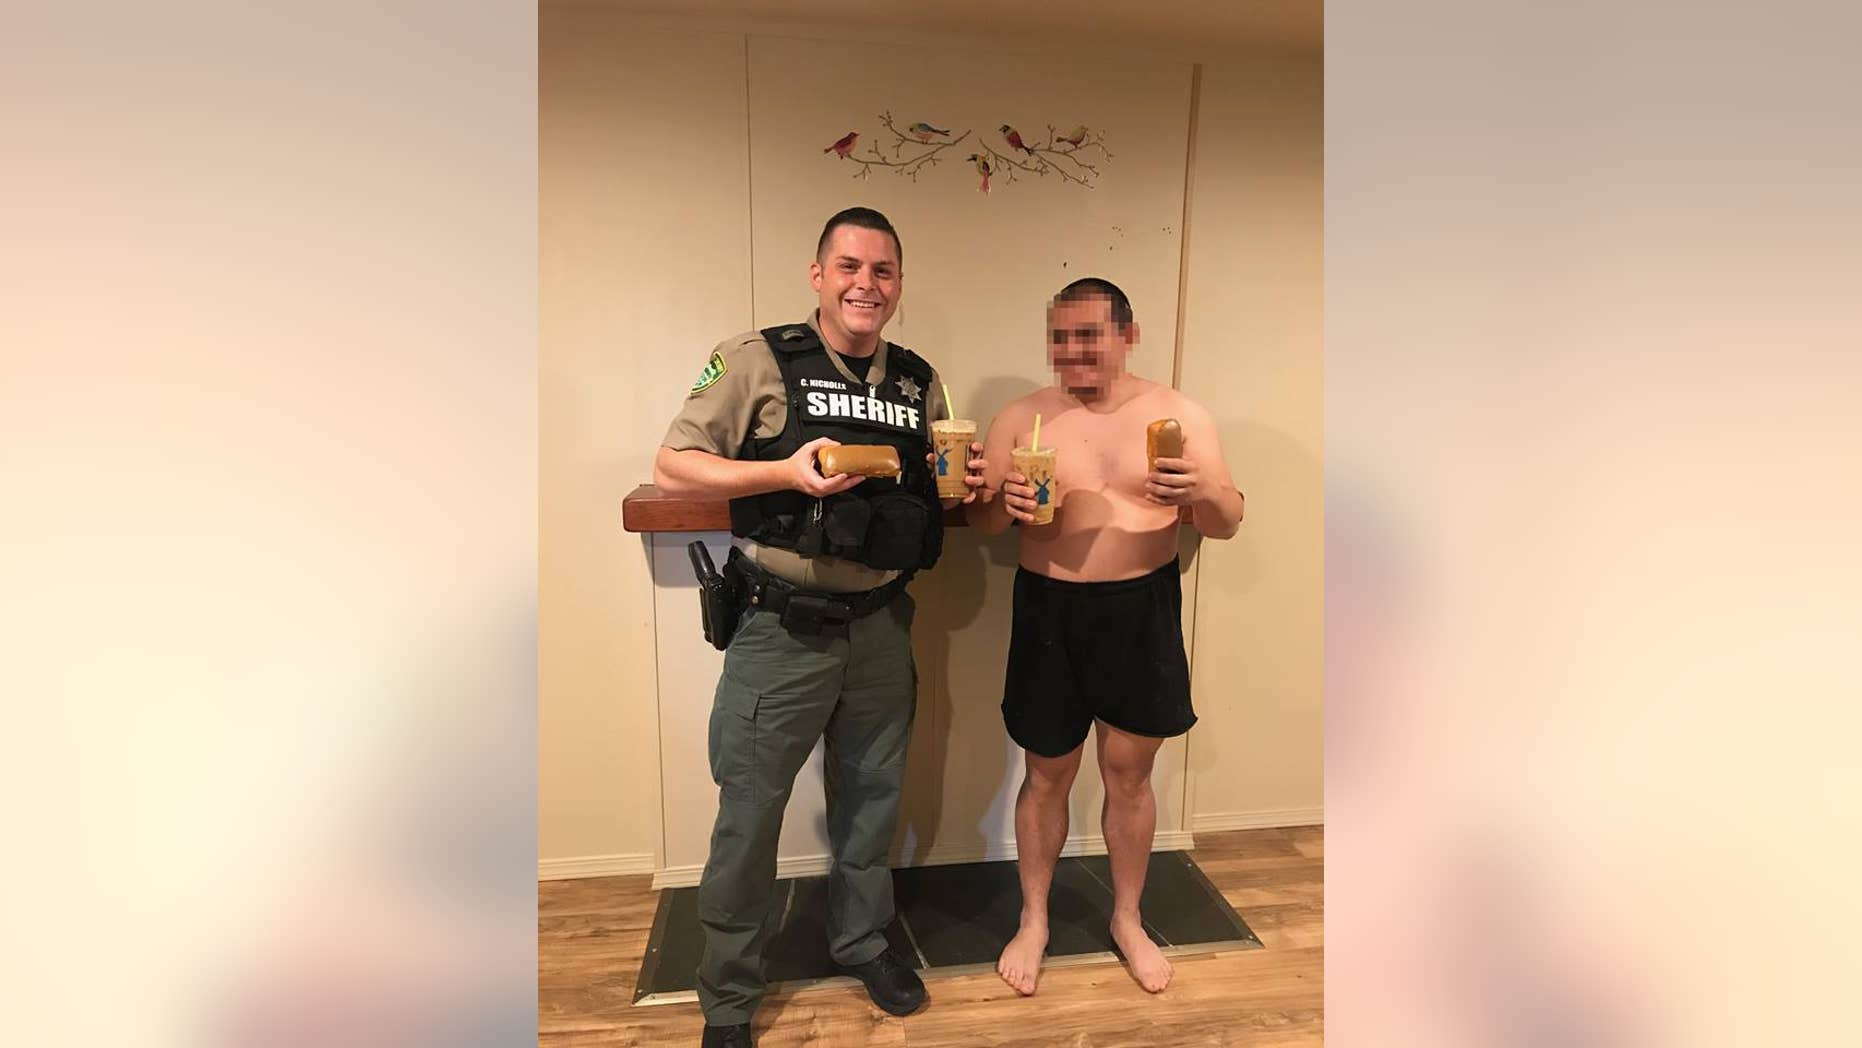 Deputy Chris Nicholls sharing coffee and donuts with the patient.